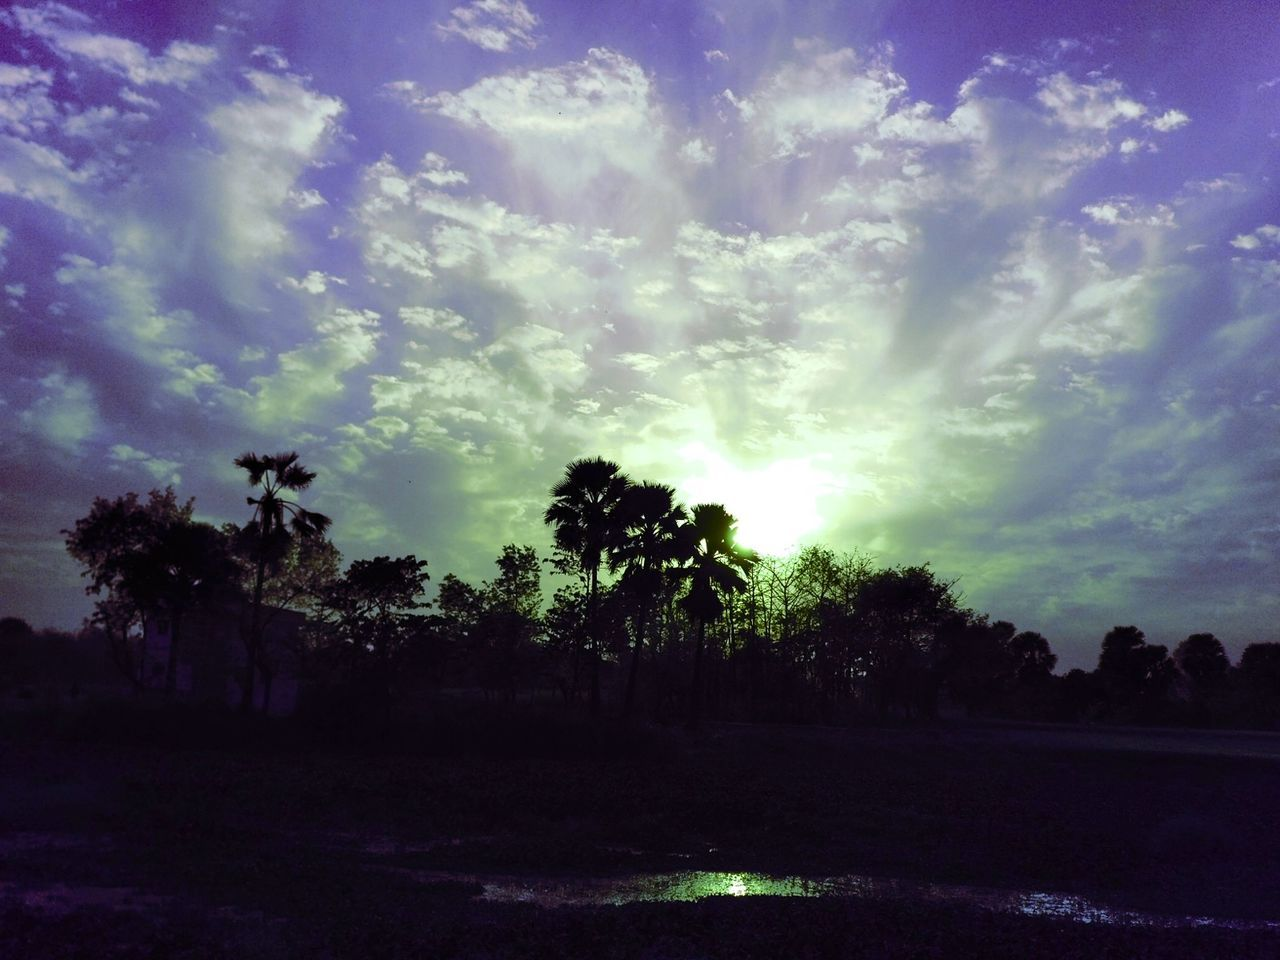 Sunset photography naturelove Landscape Outdoors Beauty In Nature No People Space Palm Tree Sunbeam